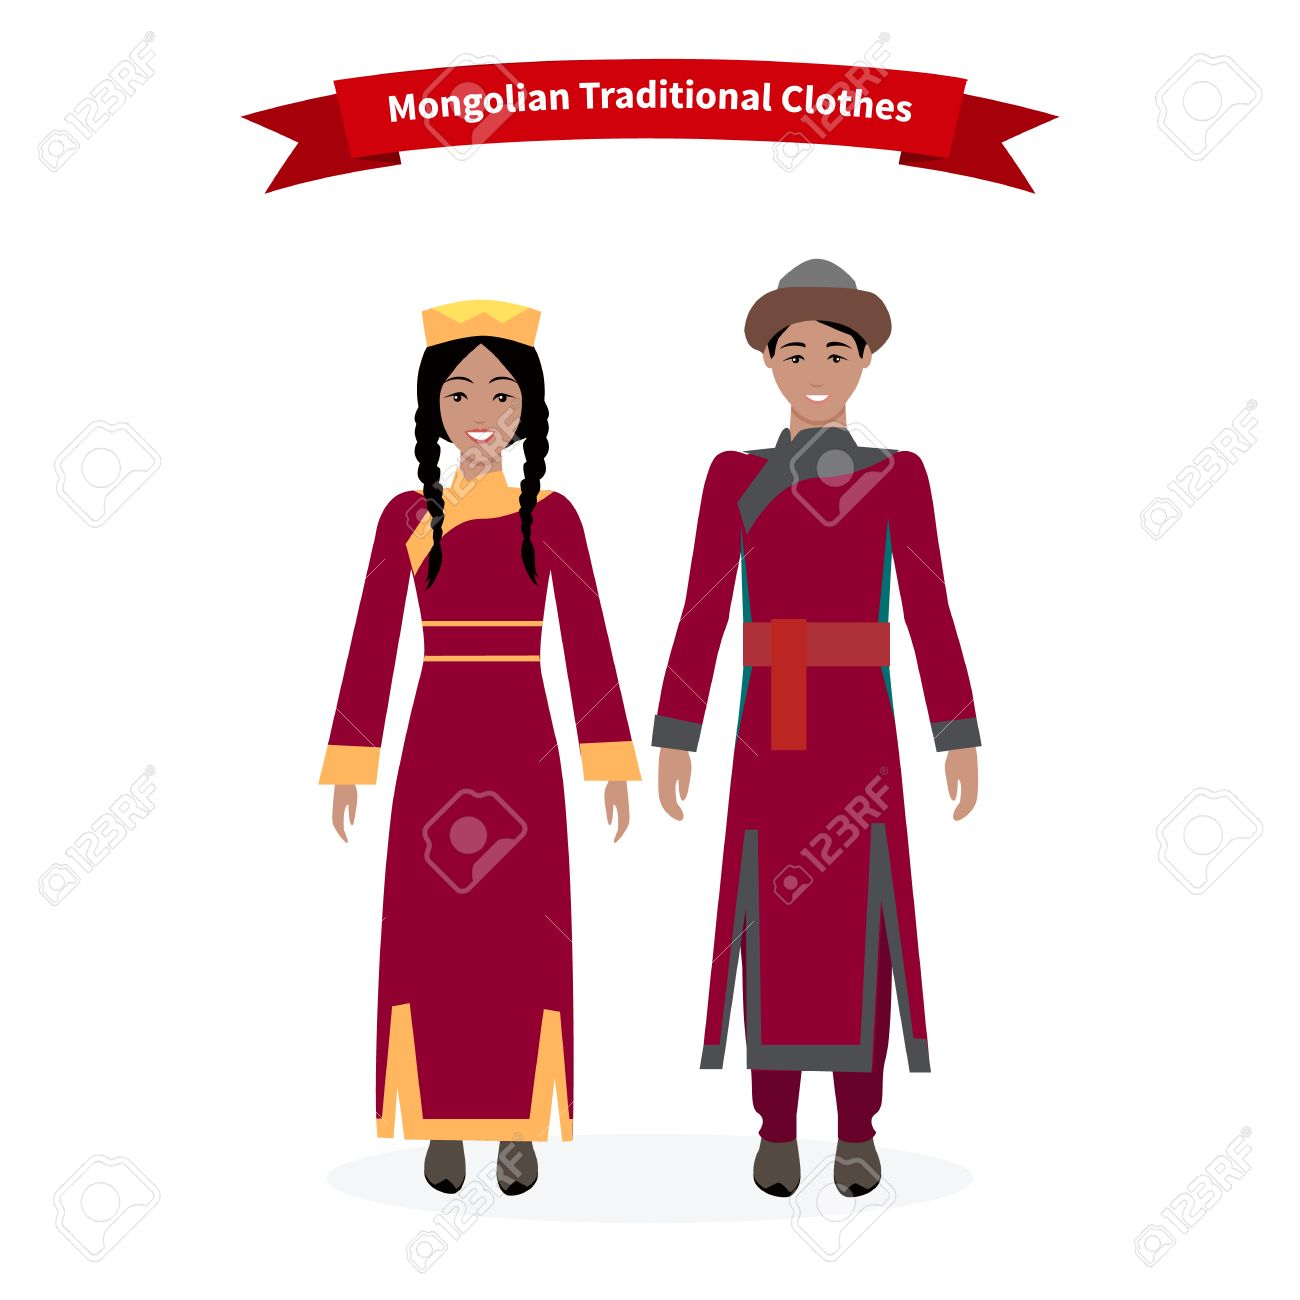 198c82b43e3 Mongolian Traditional Clothes People. Mongolian Clothing